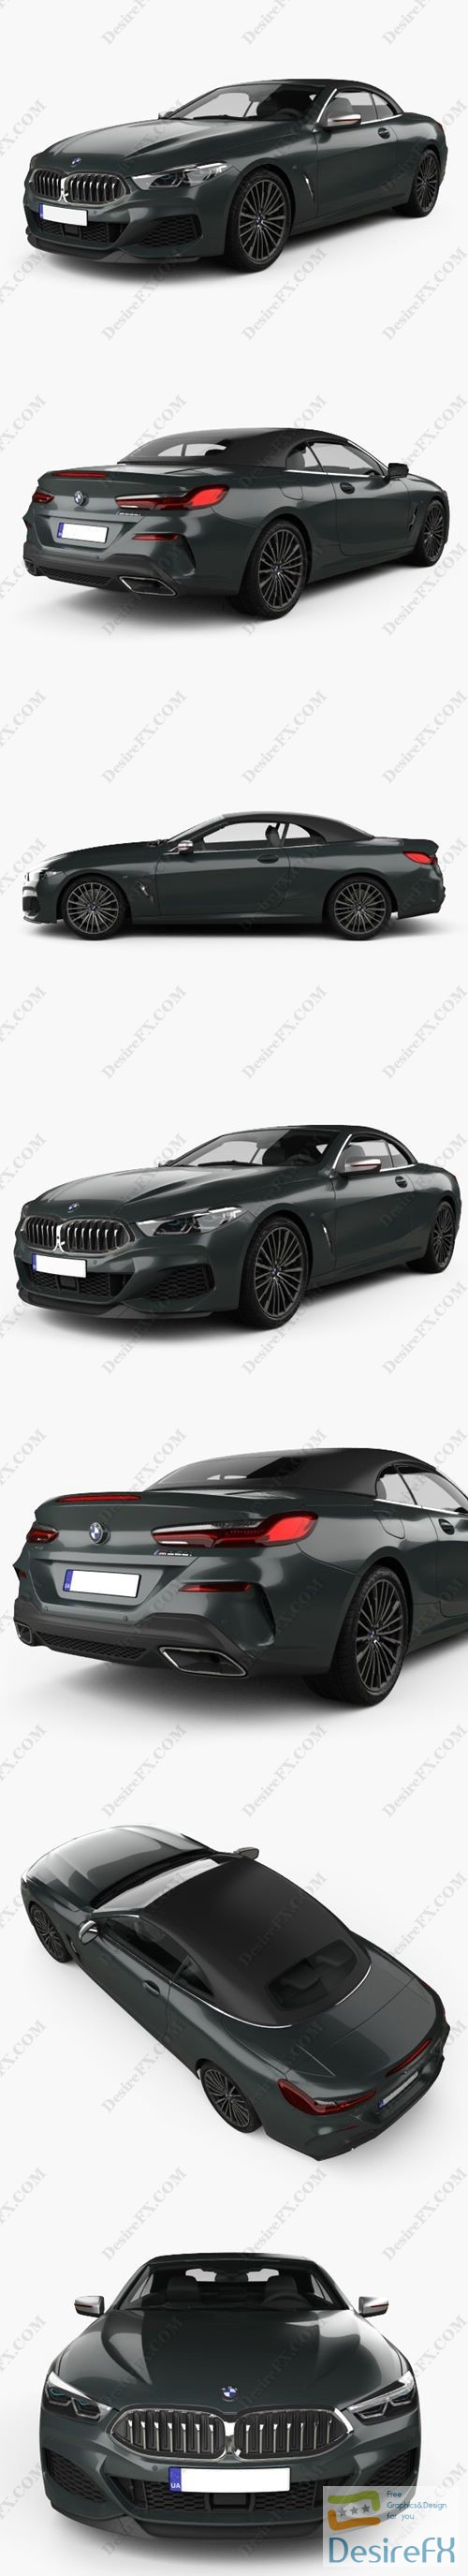 3d-models - BMW 8-Series G14 convertible M850i 2019 3D Model